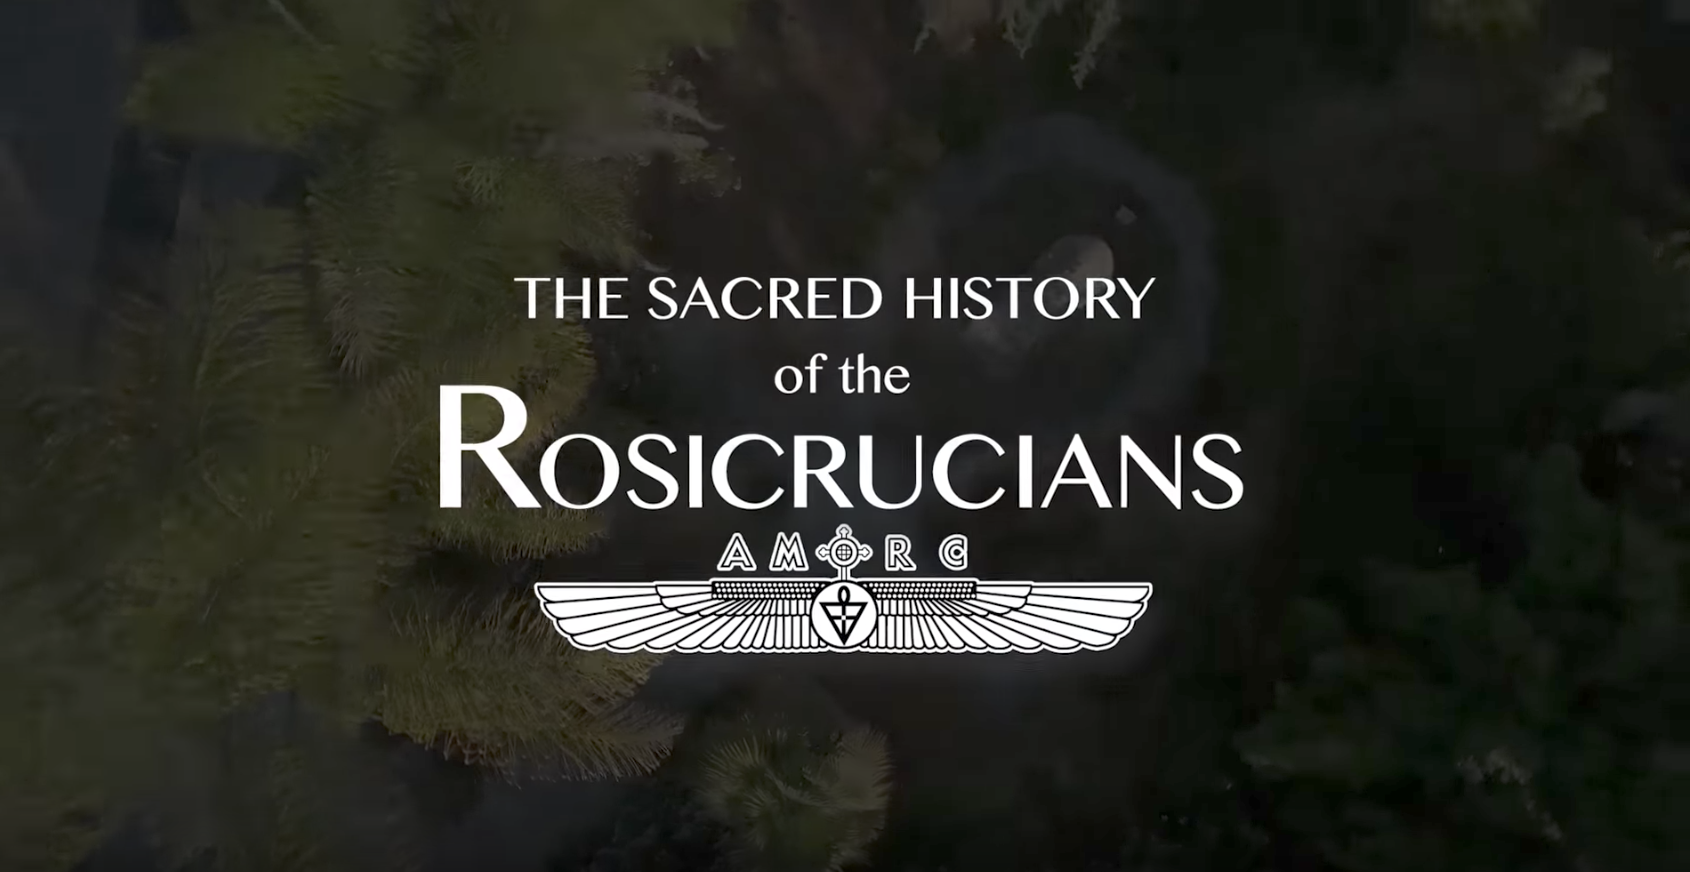 The Sacred History of the Rosicrucians